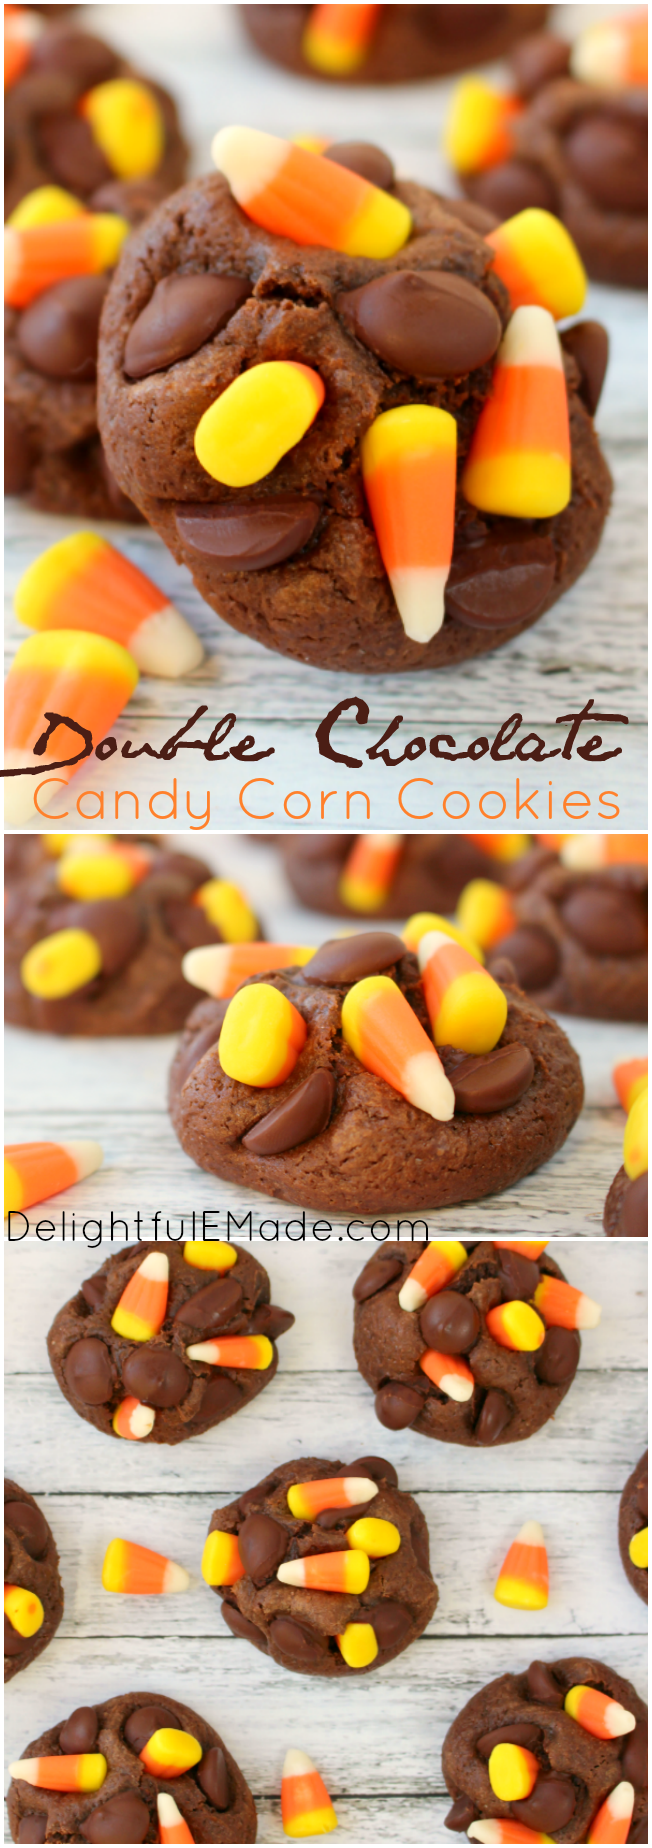 Double Chocolate Candy Corn Cookies - Delightful E Made